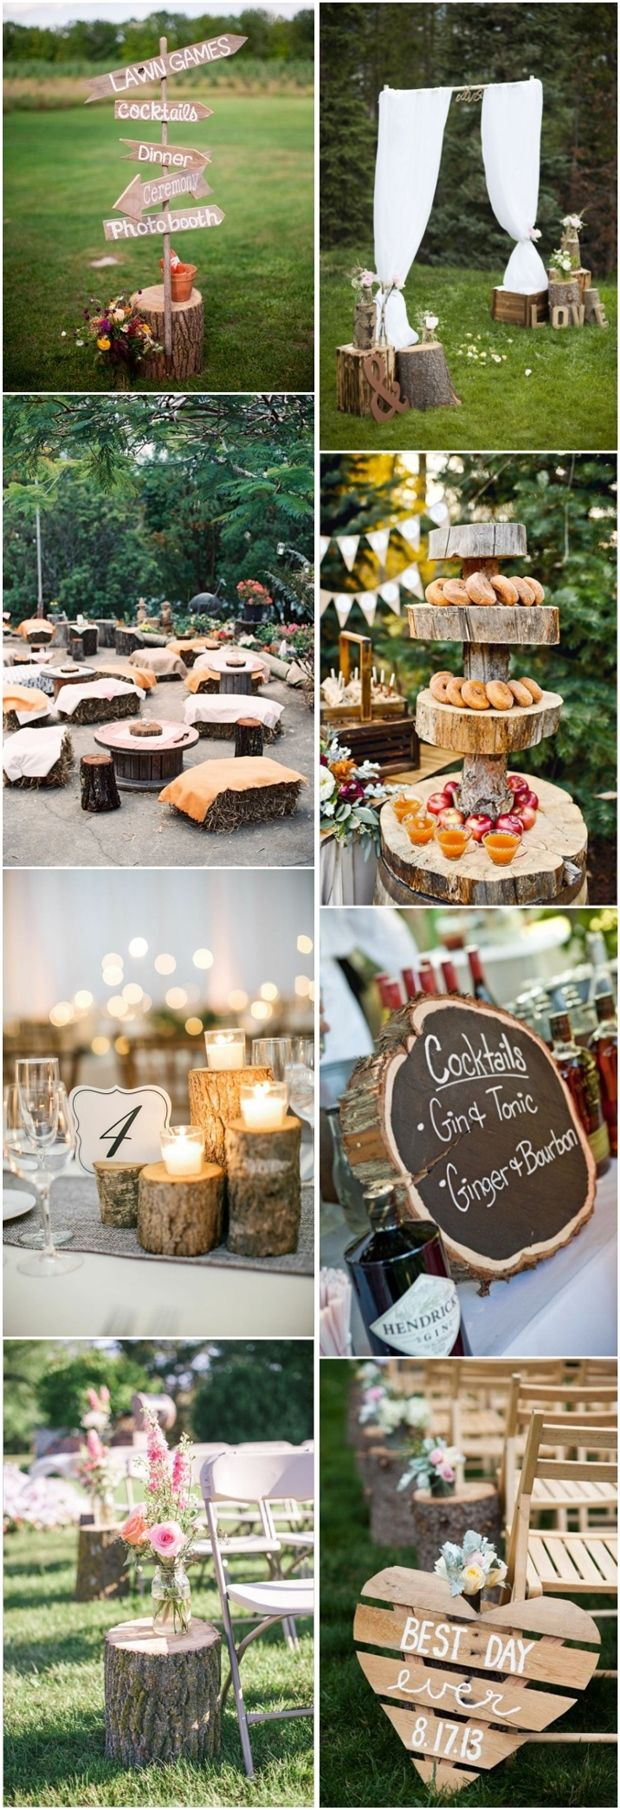 Tree stump ideas for wedding - Rustic Country Wedding Ideas Tree Stump Wedding Decor Idea